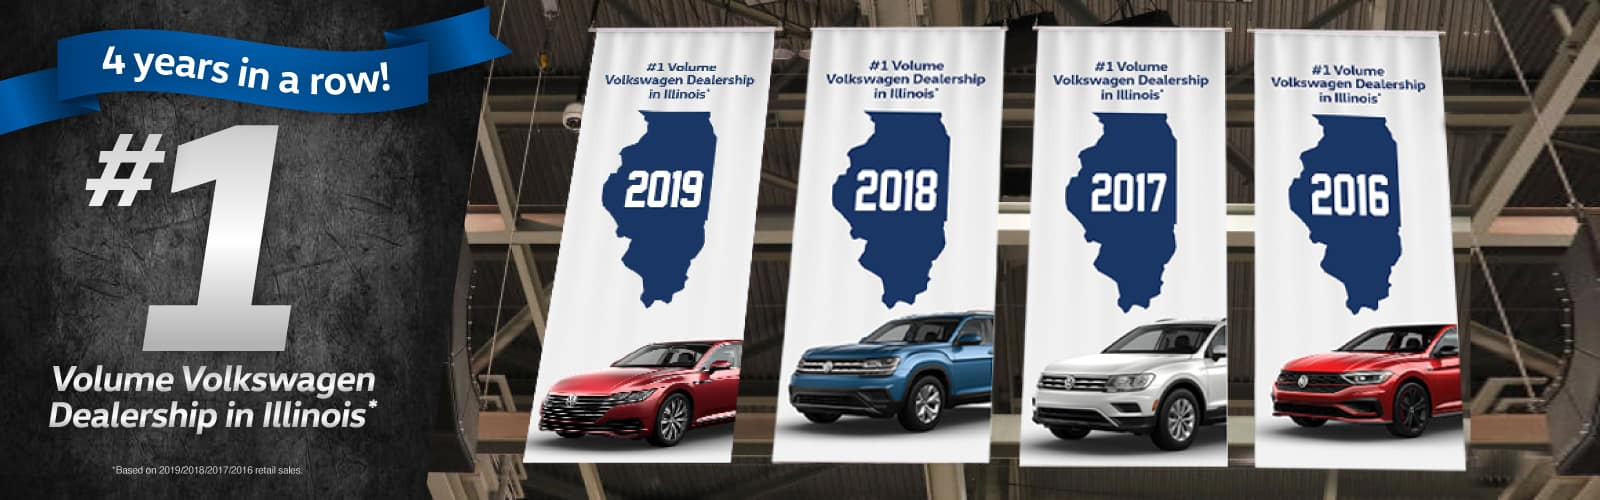 Number One Volkswagen Dealership in IL - 4 Years in Row!